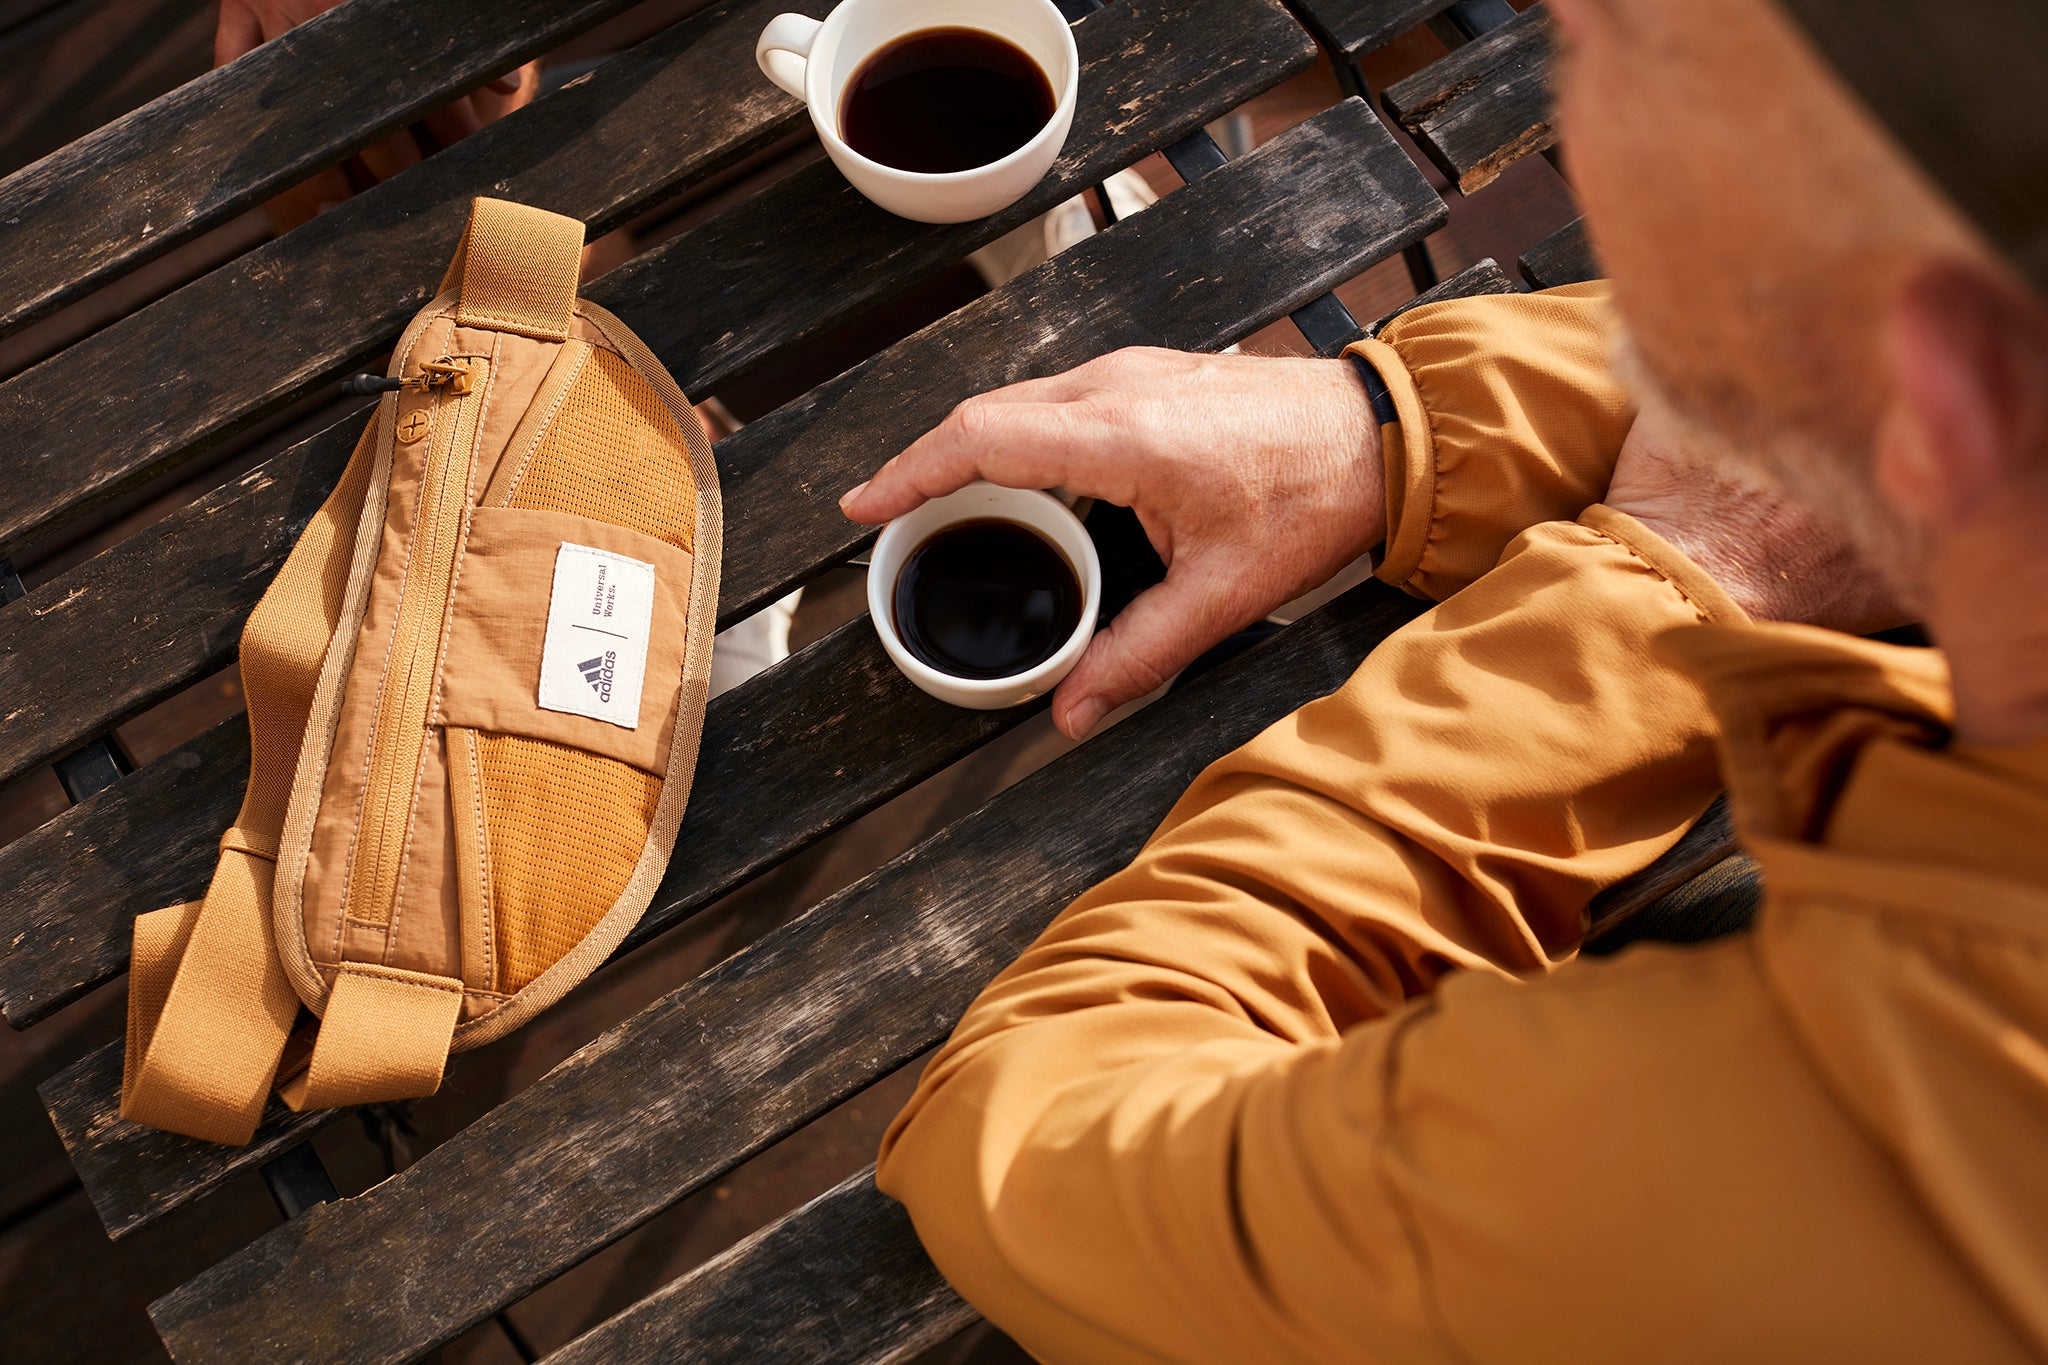 Universal Works x adidas bum bag with a coffee.